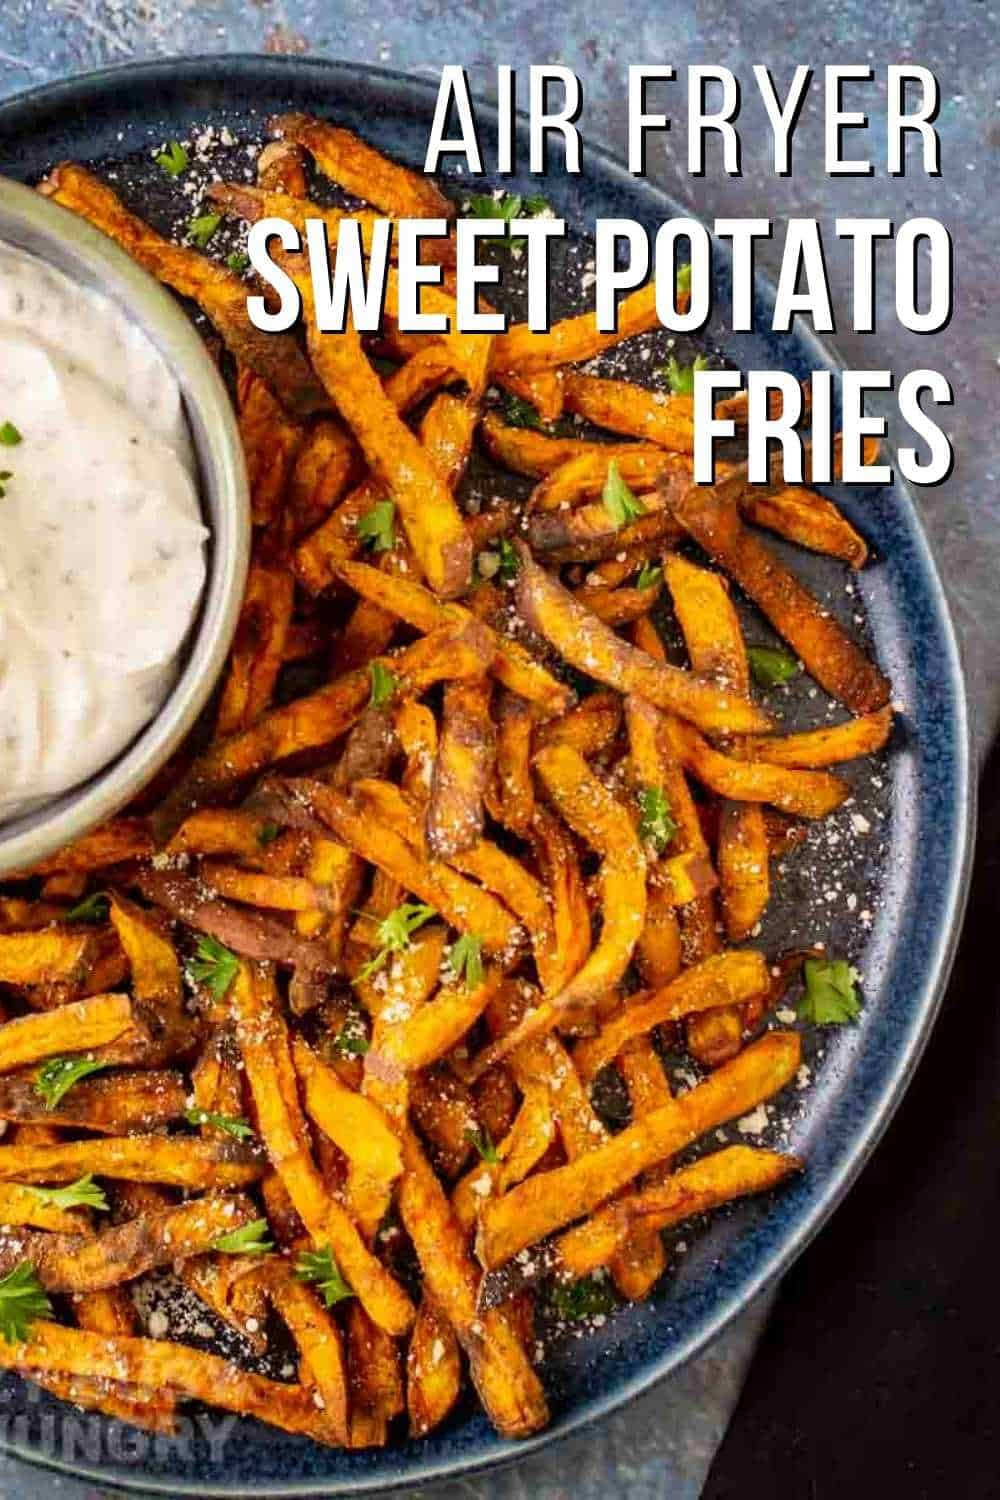 Overhead view of cooked sweet potato fries on a blue plate garnished with crumbled blue cheese and parsley.